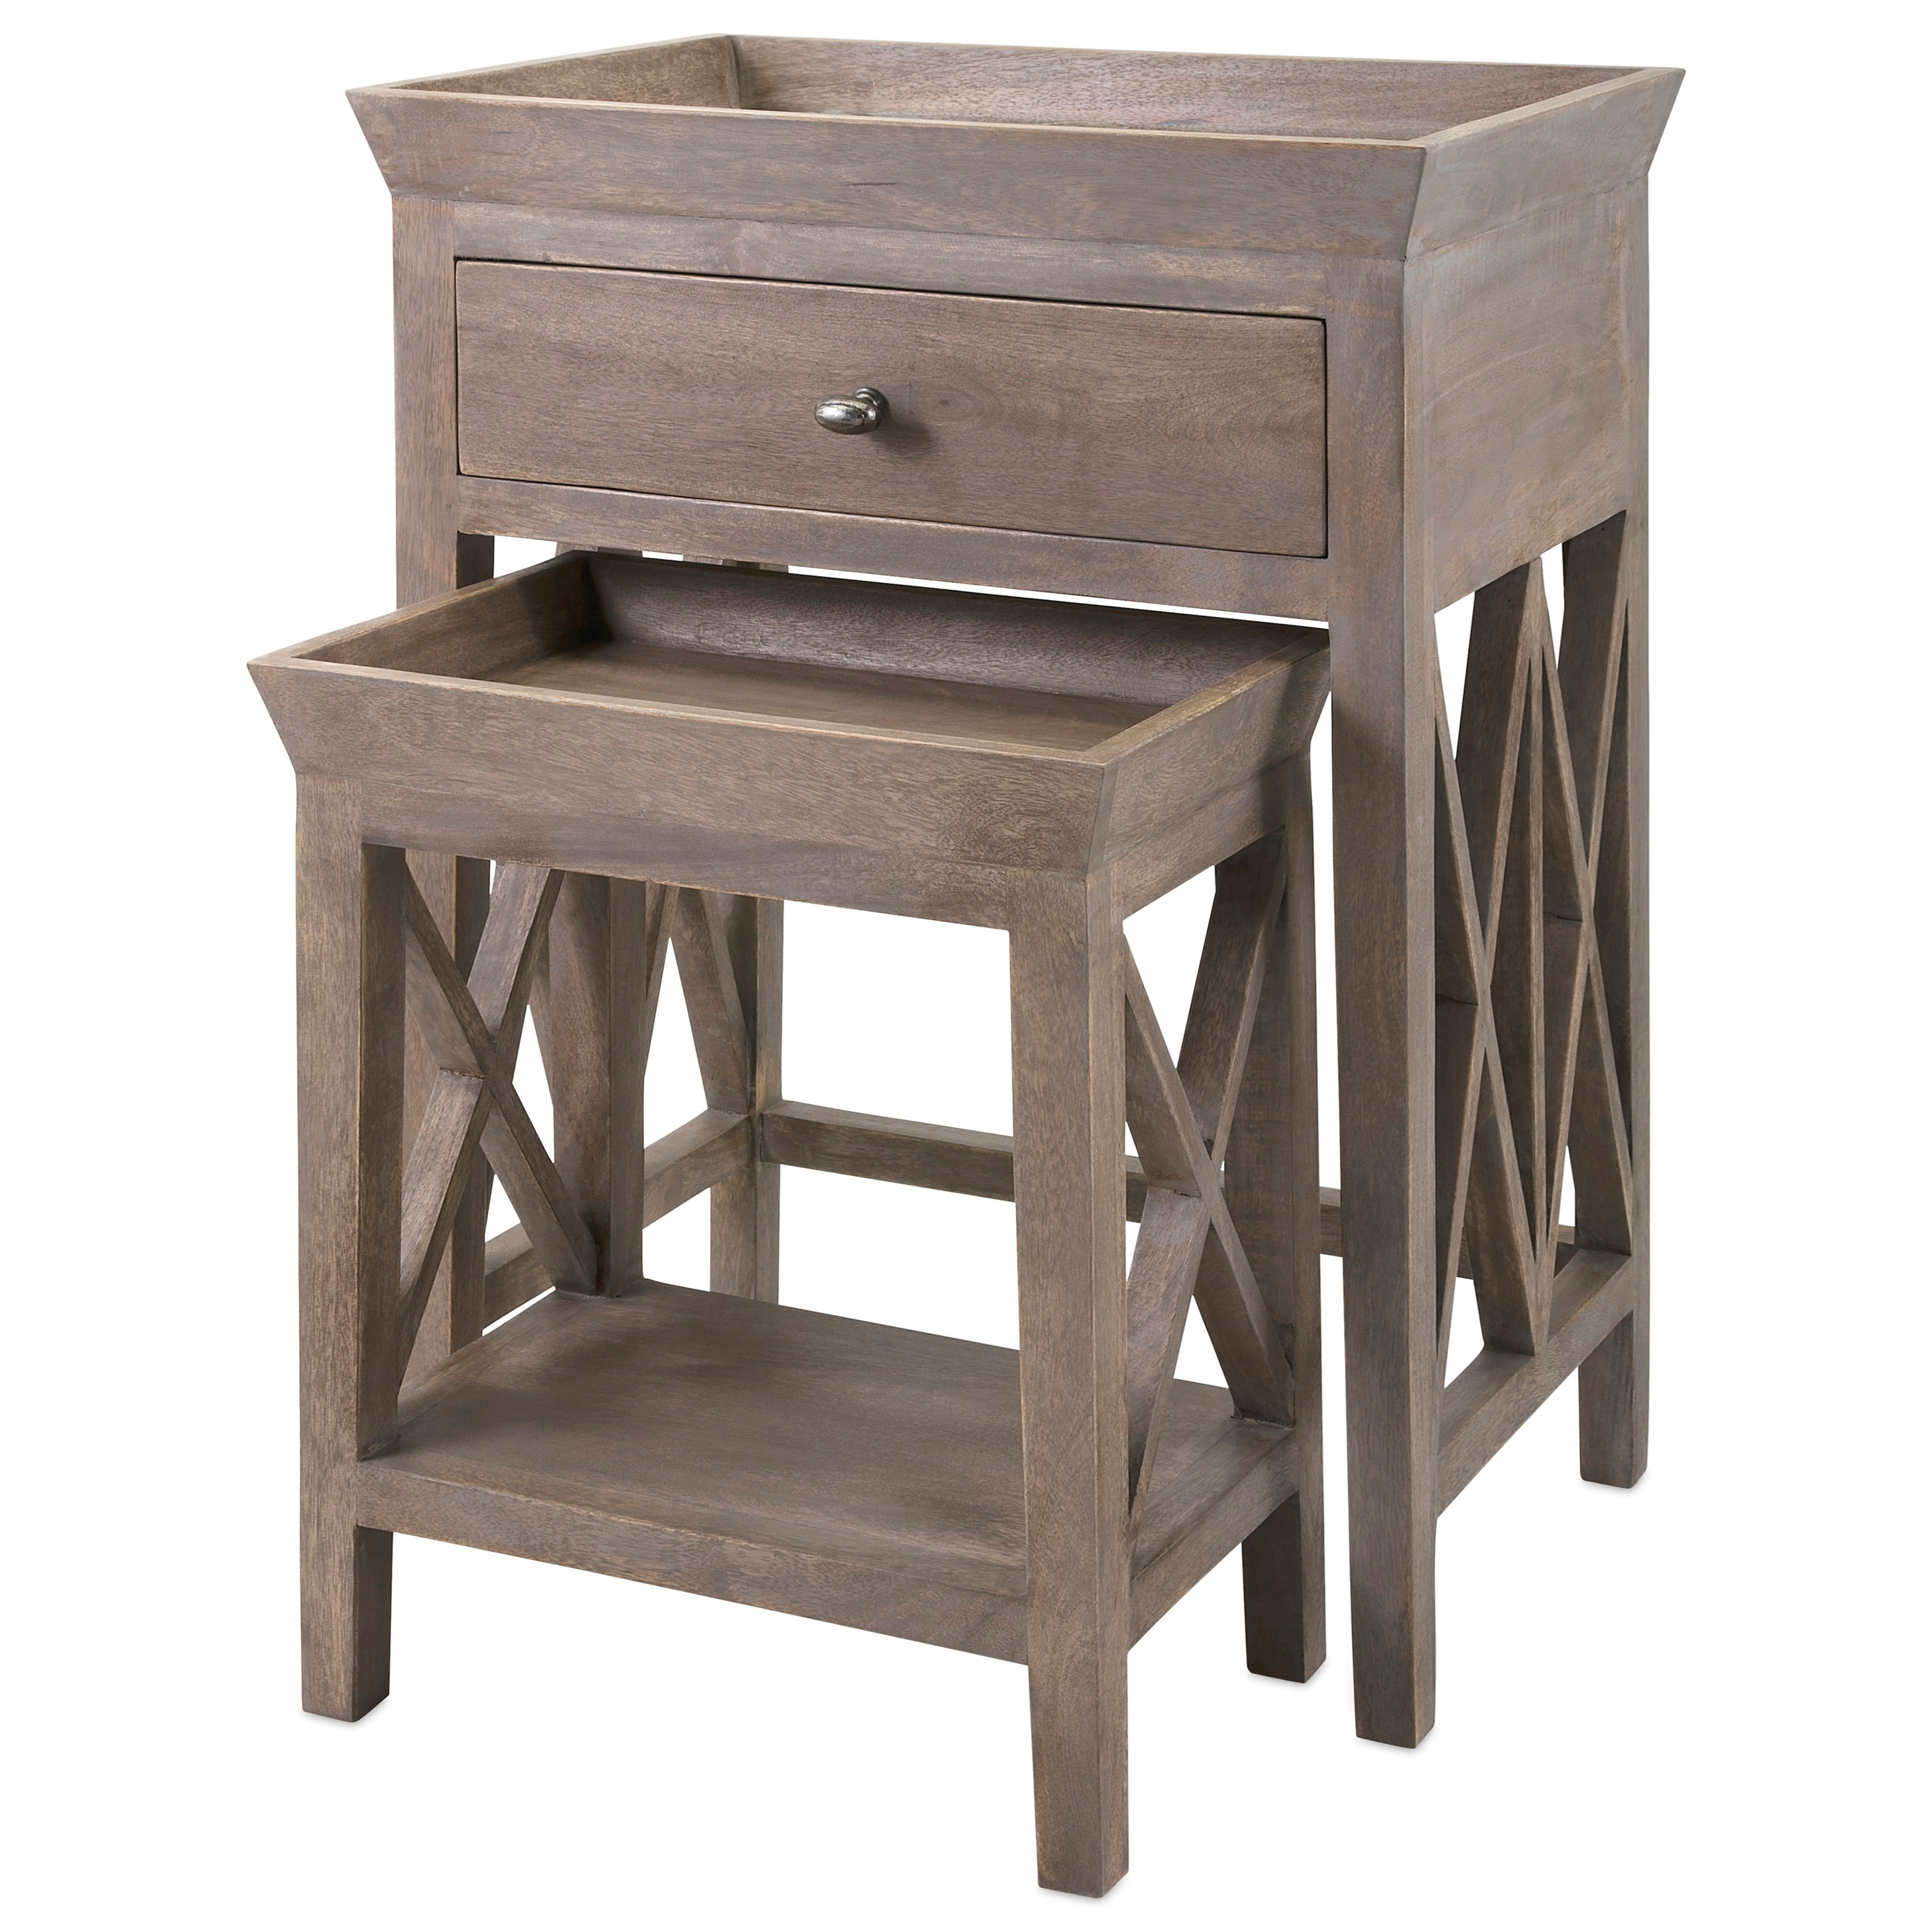 Accent Tables and Cabinets Britton Side Tables - Set of 2 by IMAX Worldwide Home at Alison Craig Home Furnishings